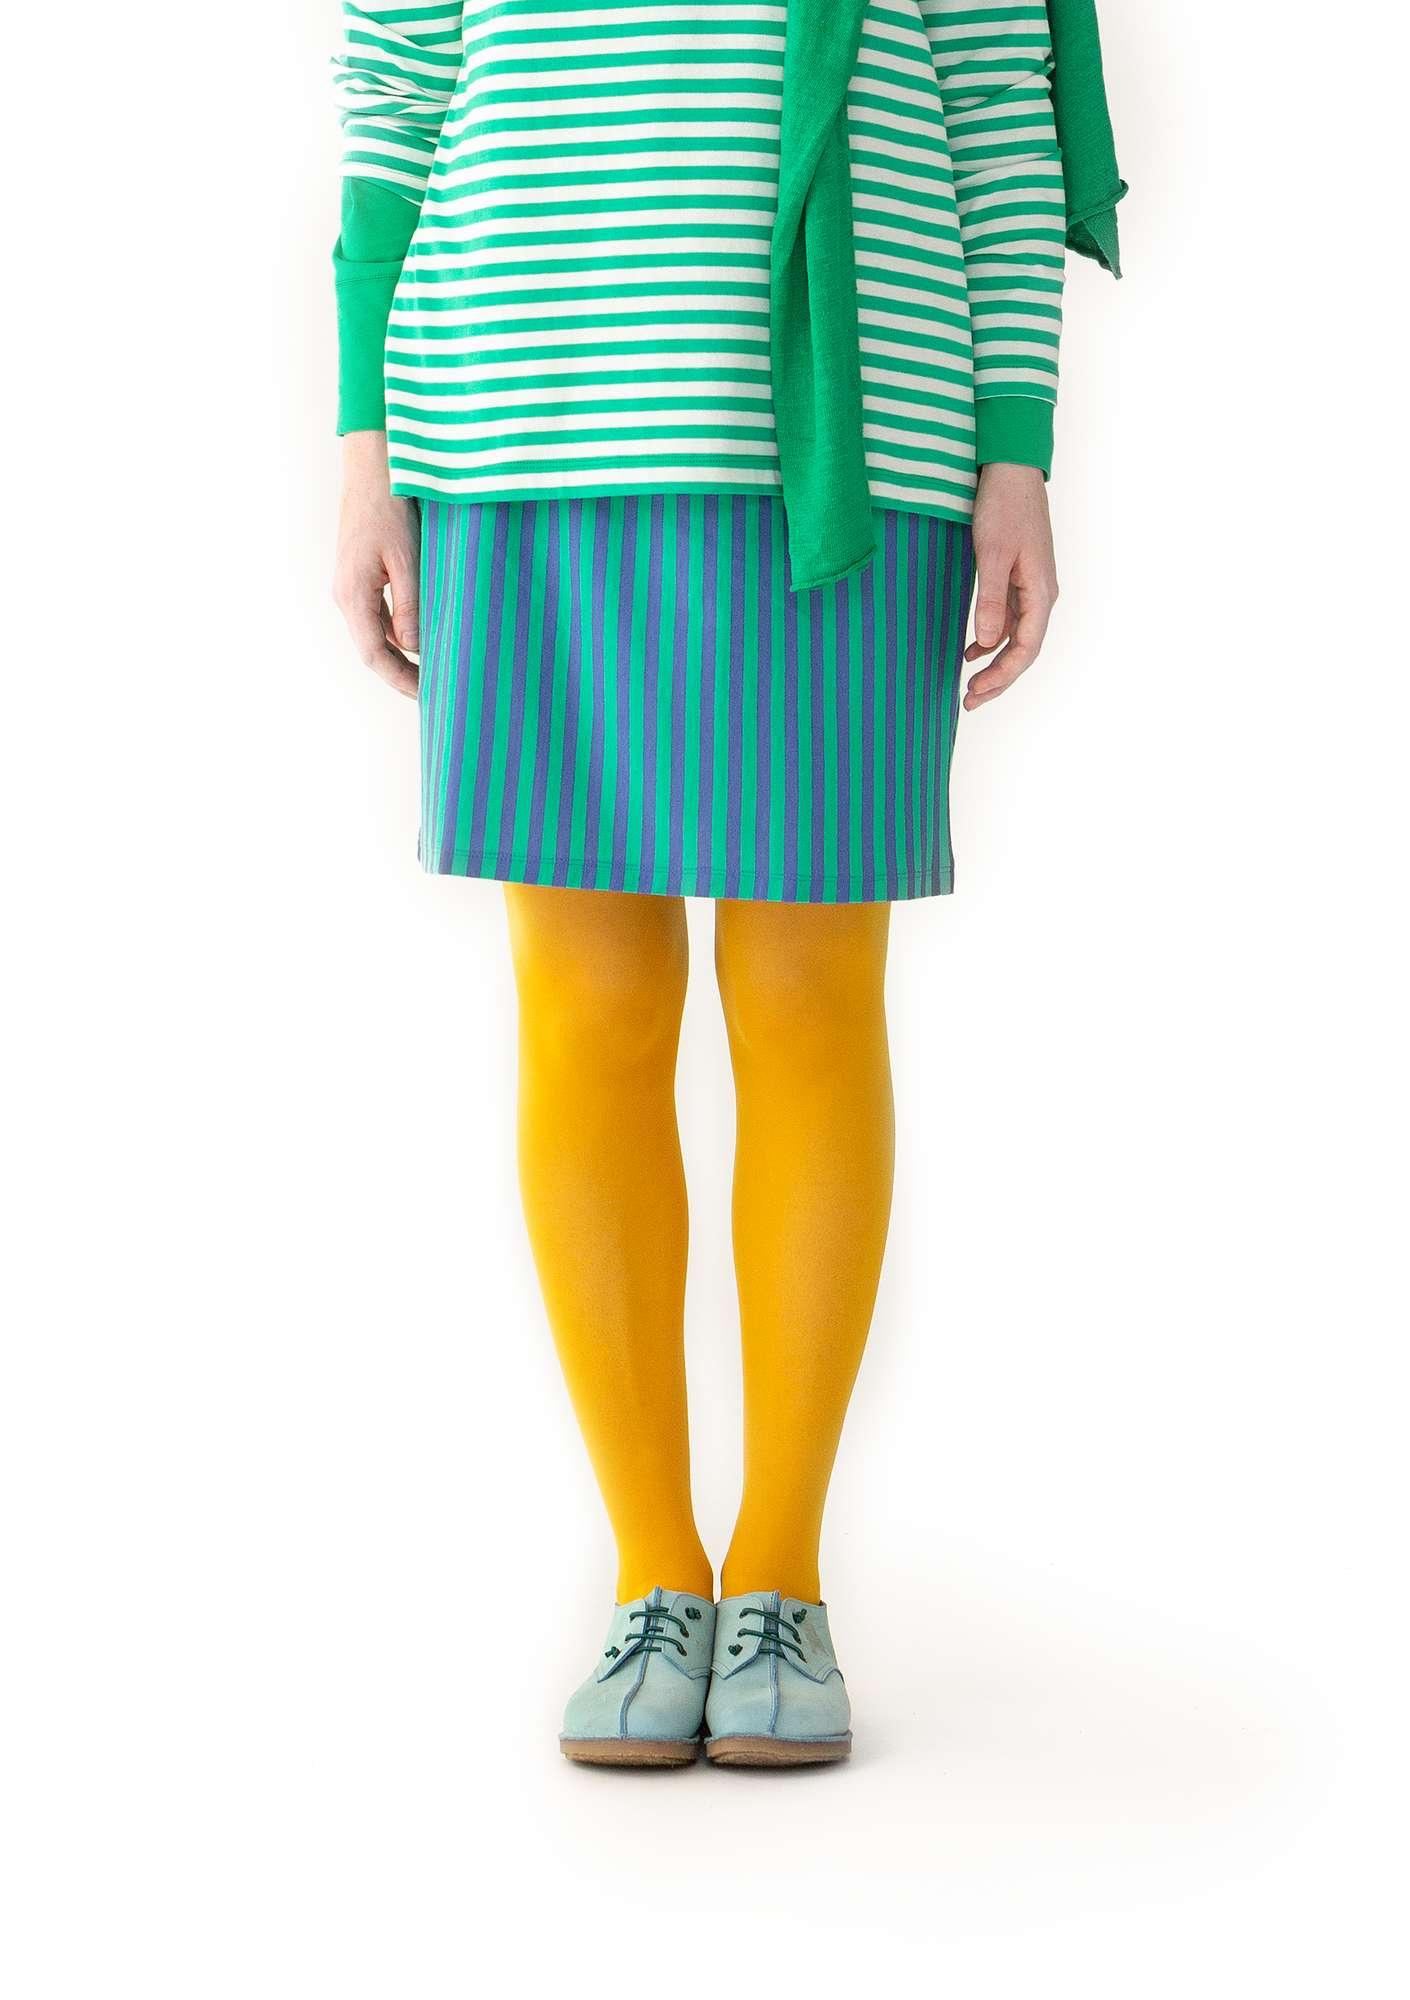 Striped skirt lotus green/sky blue